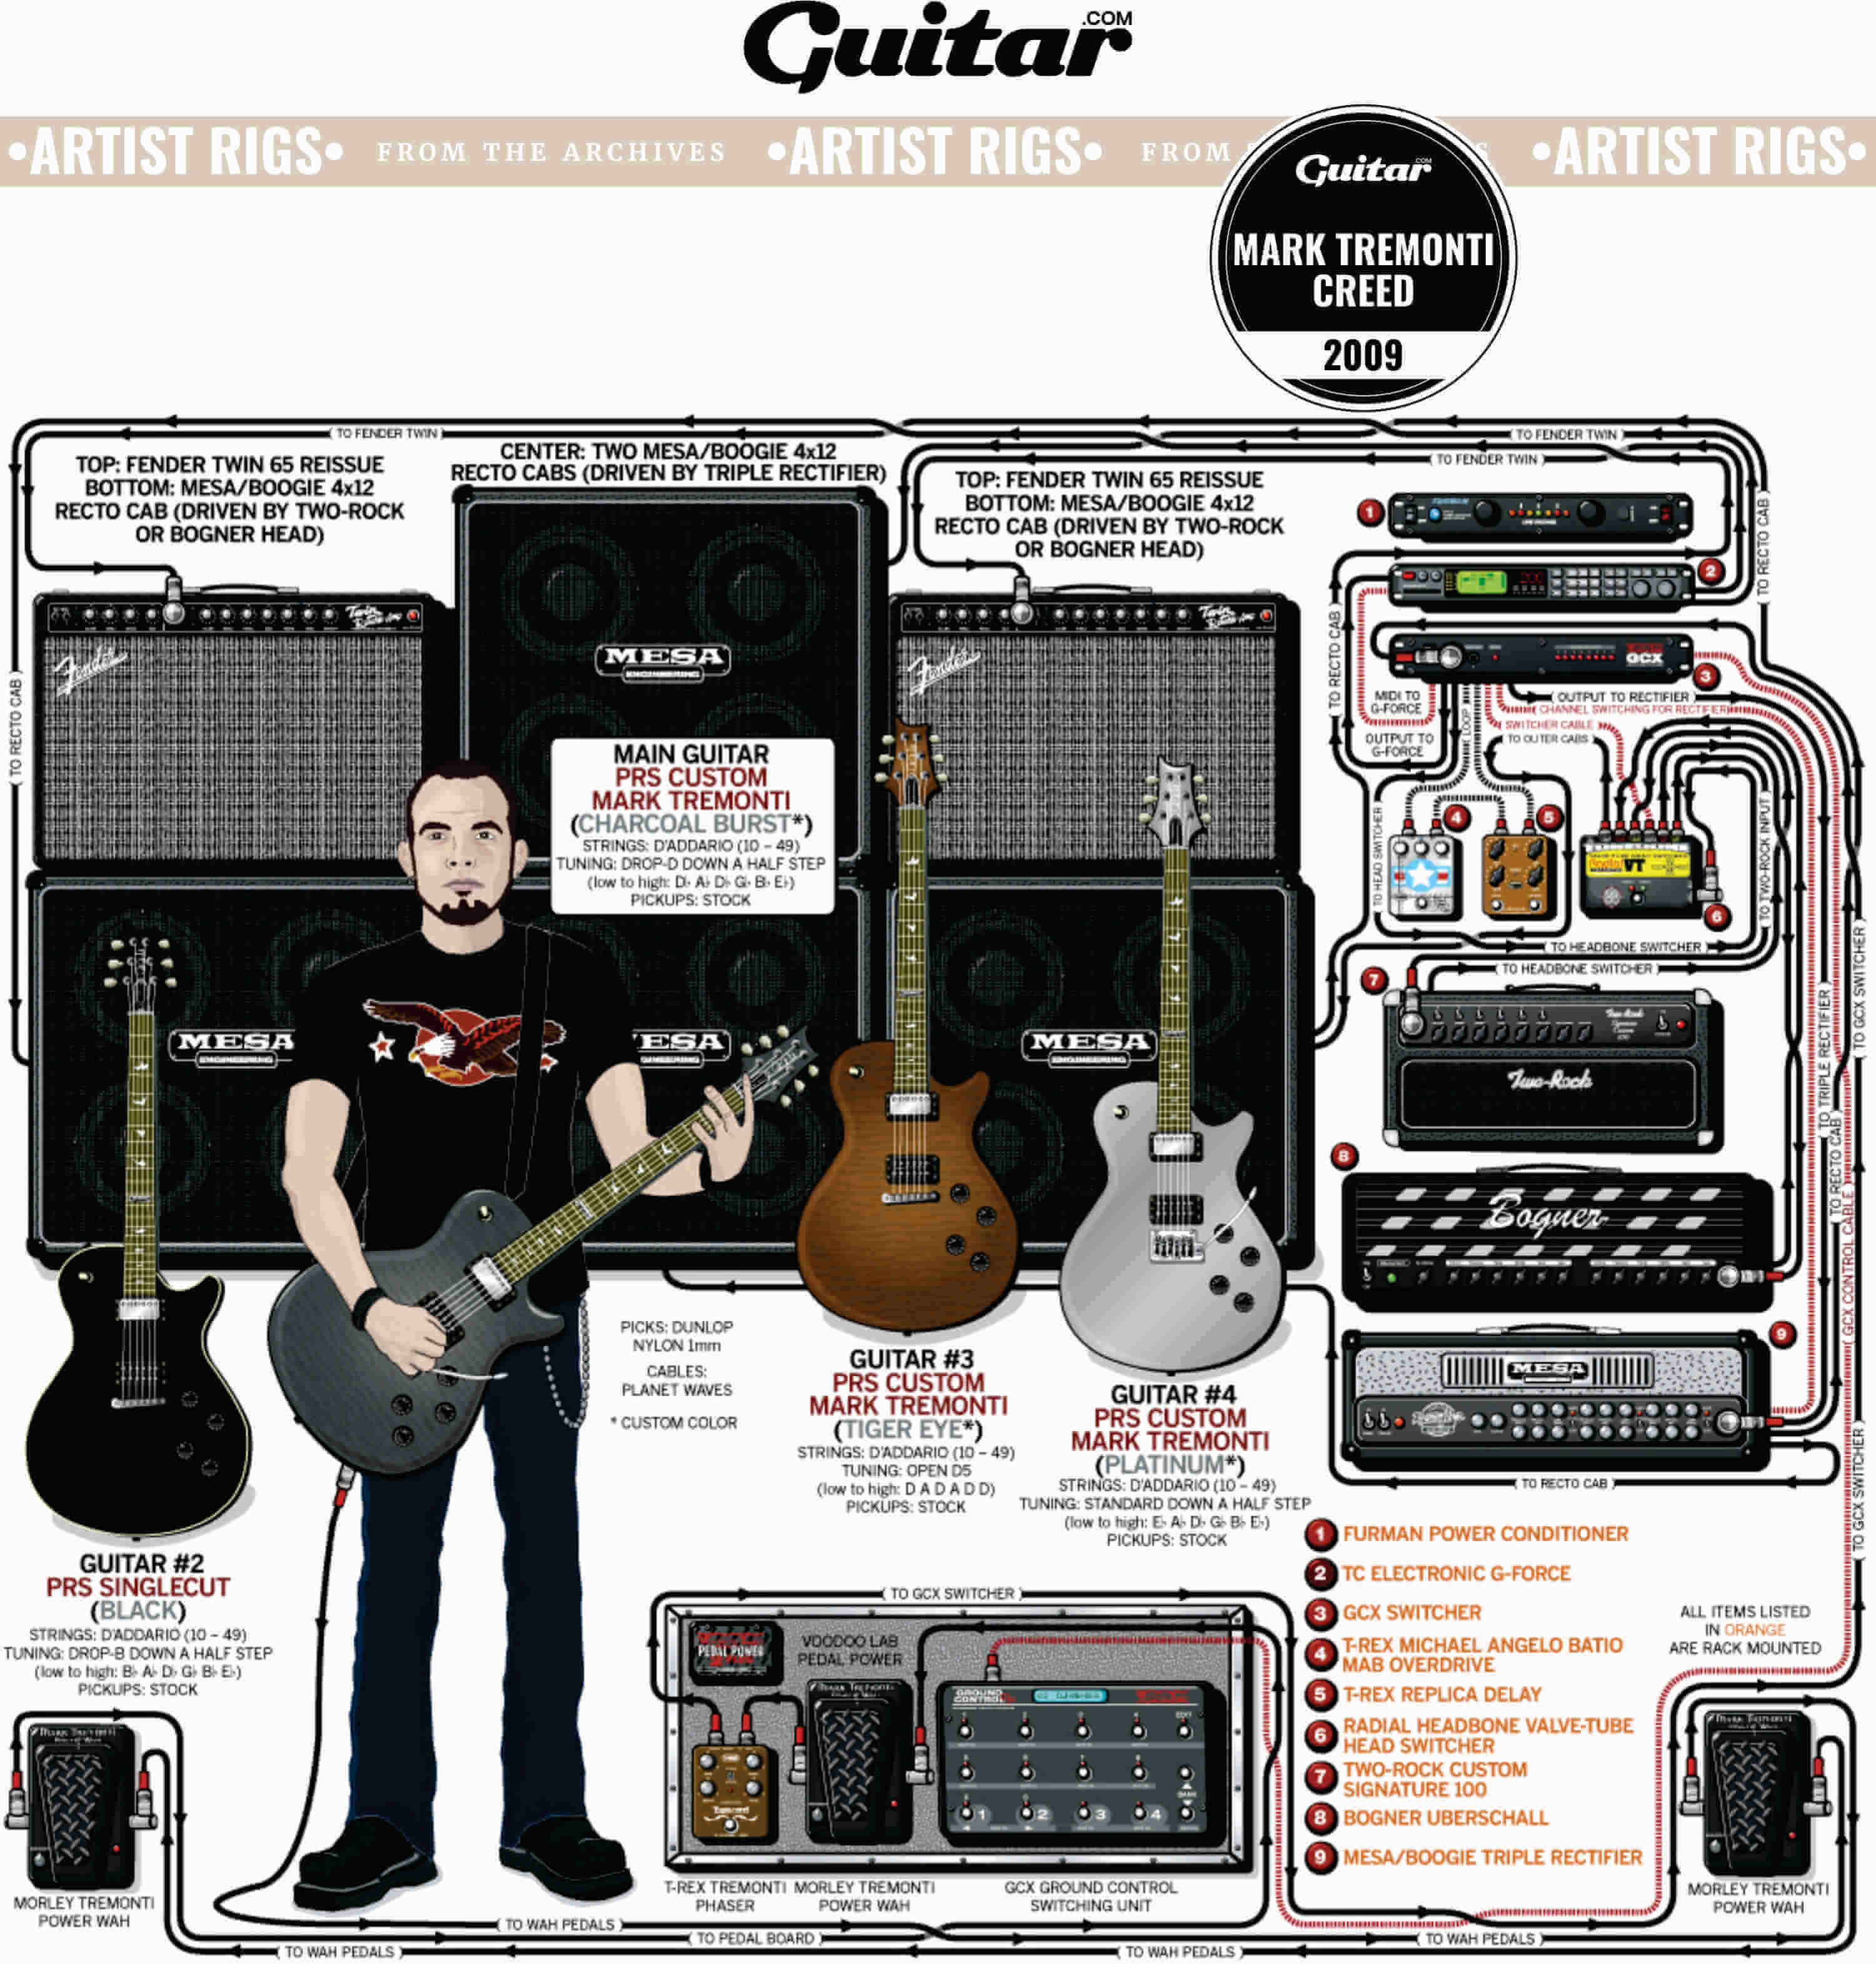 Rig Diagram: Mark Tremonti, Creed (2009)